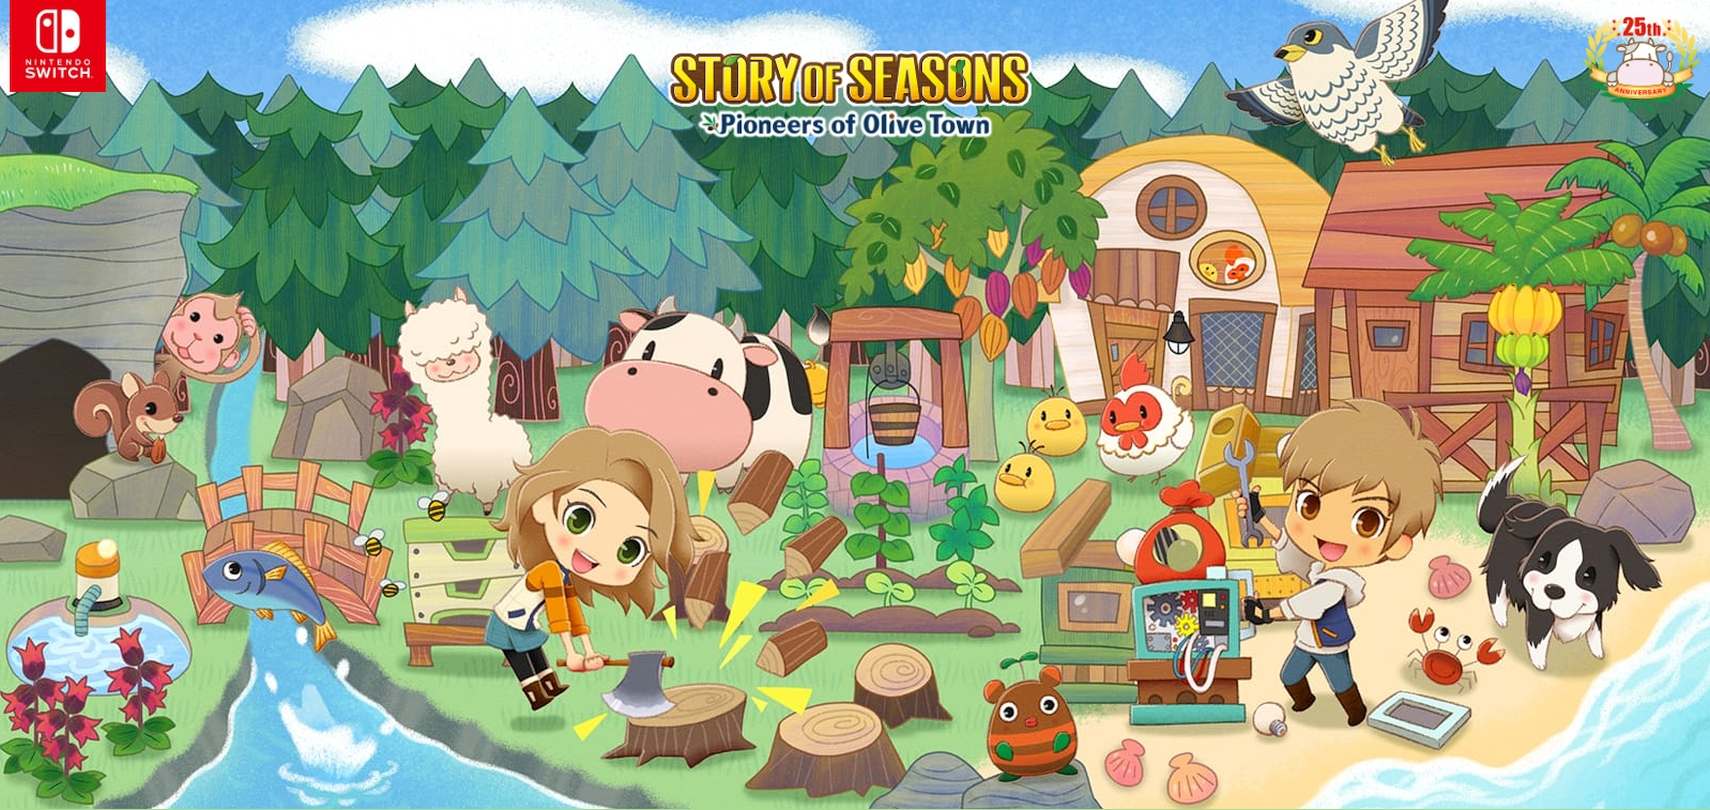 Story of Seasons: Pioneers of Olive Town Premium Edition Announced